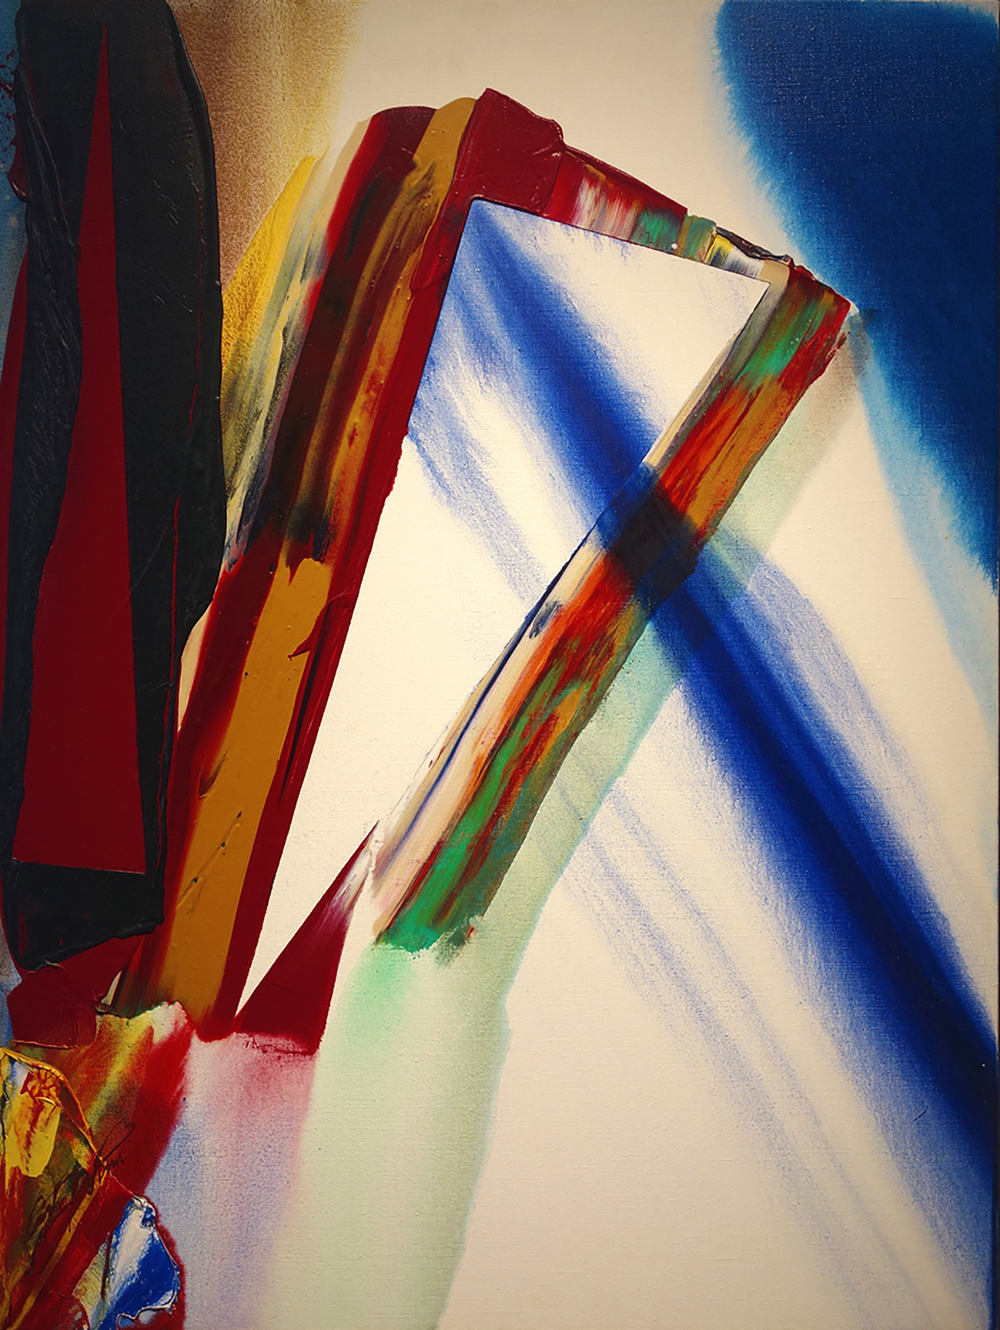 Phenomena Broadway Prism at 42nd Street, 1983